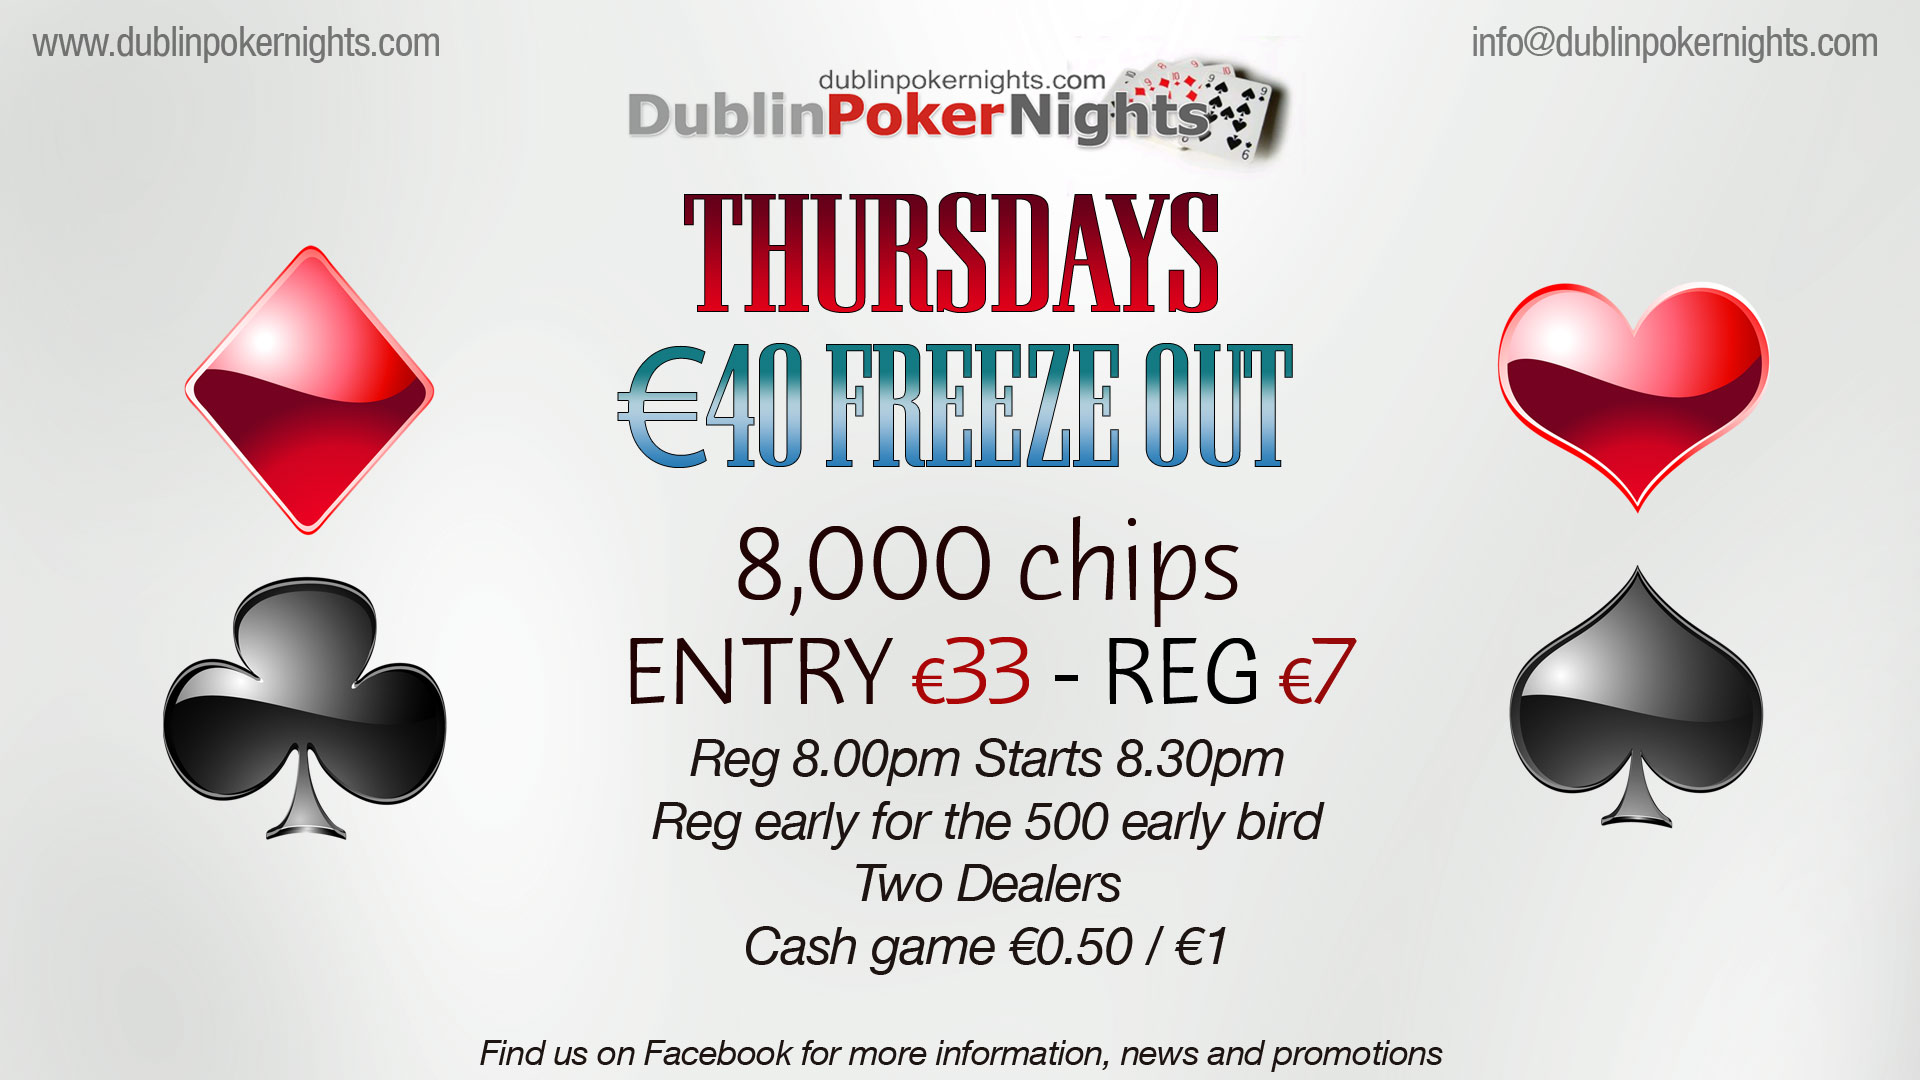 Poker Nights at The Bell Pub Blanchardstown